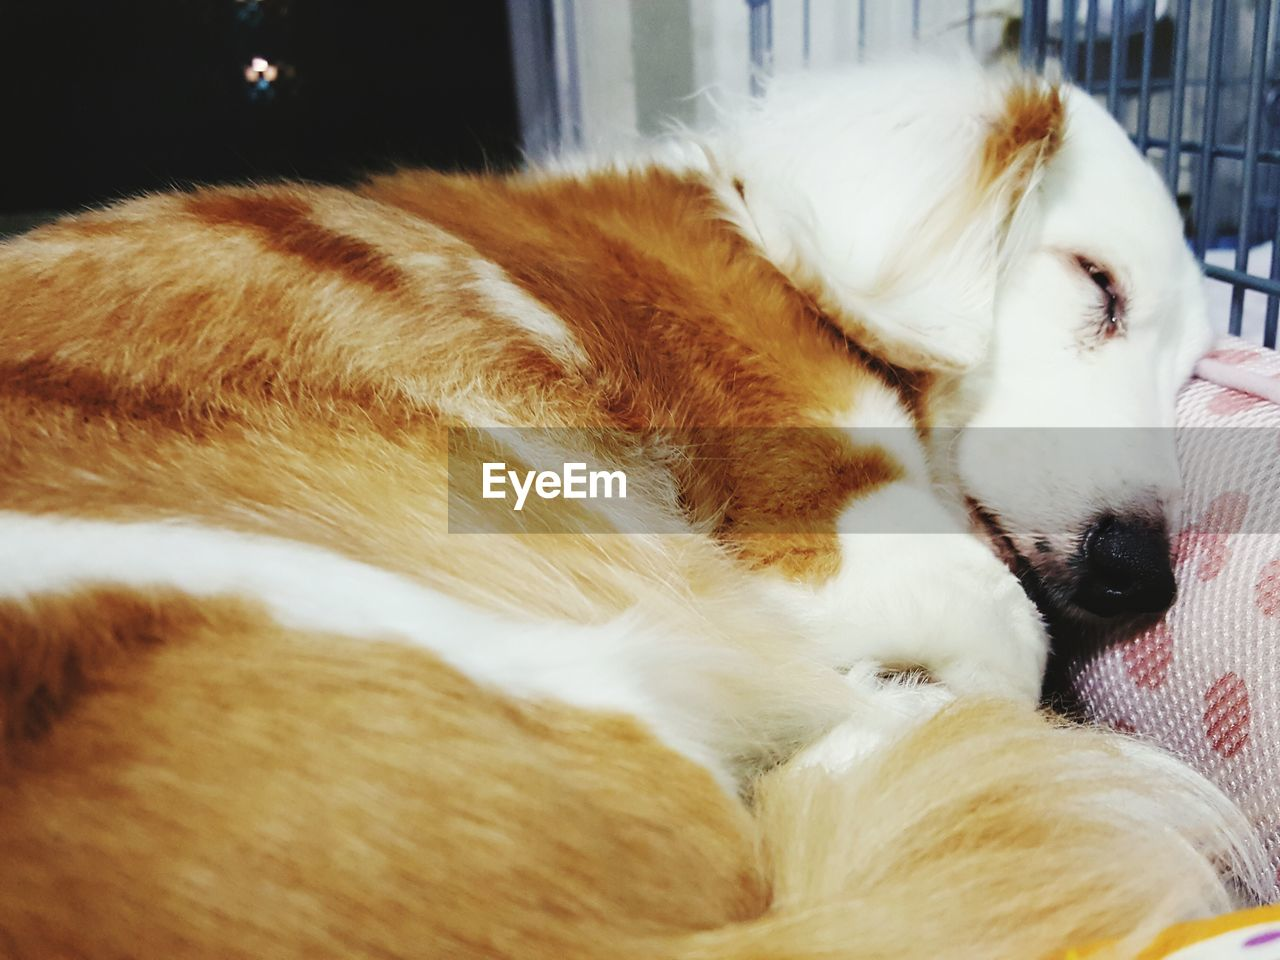 pets, domestic animals, animal themes, one animal, mammal, sleeping, eyes closed, relaxation, dog, resting, indoors, lying down, close-up, no people, day